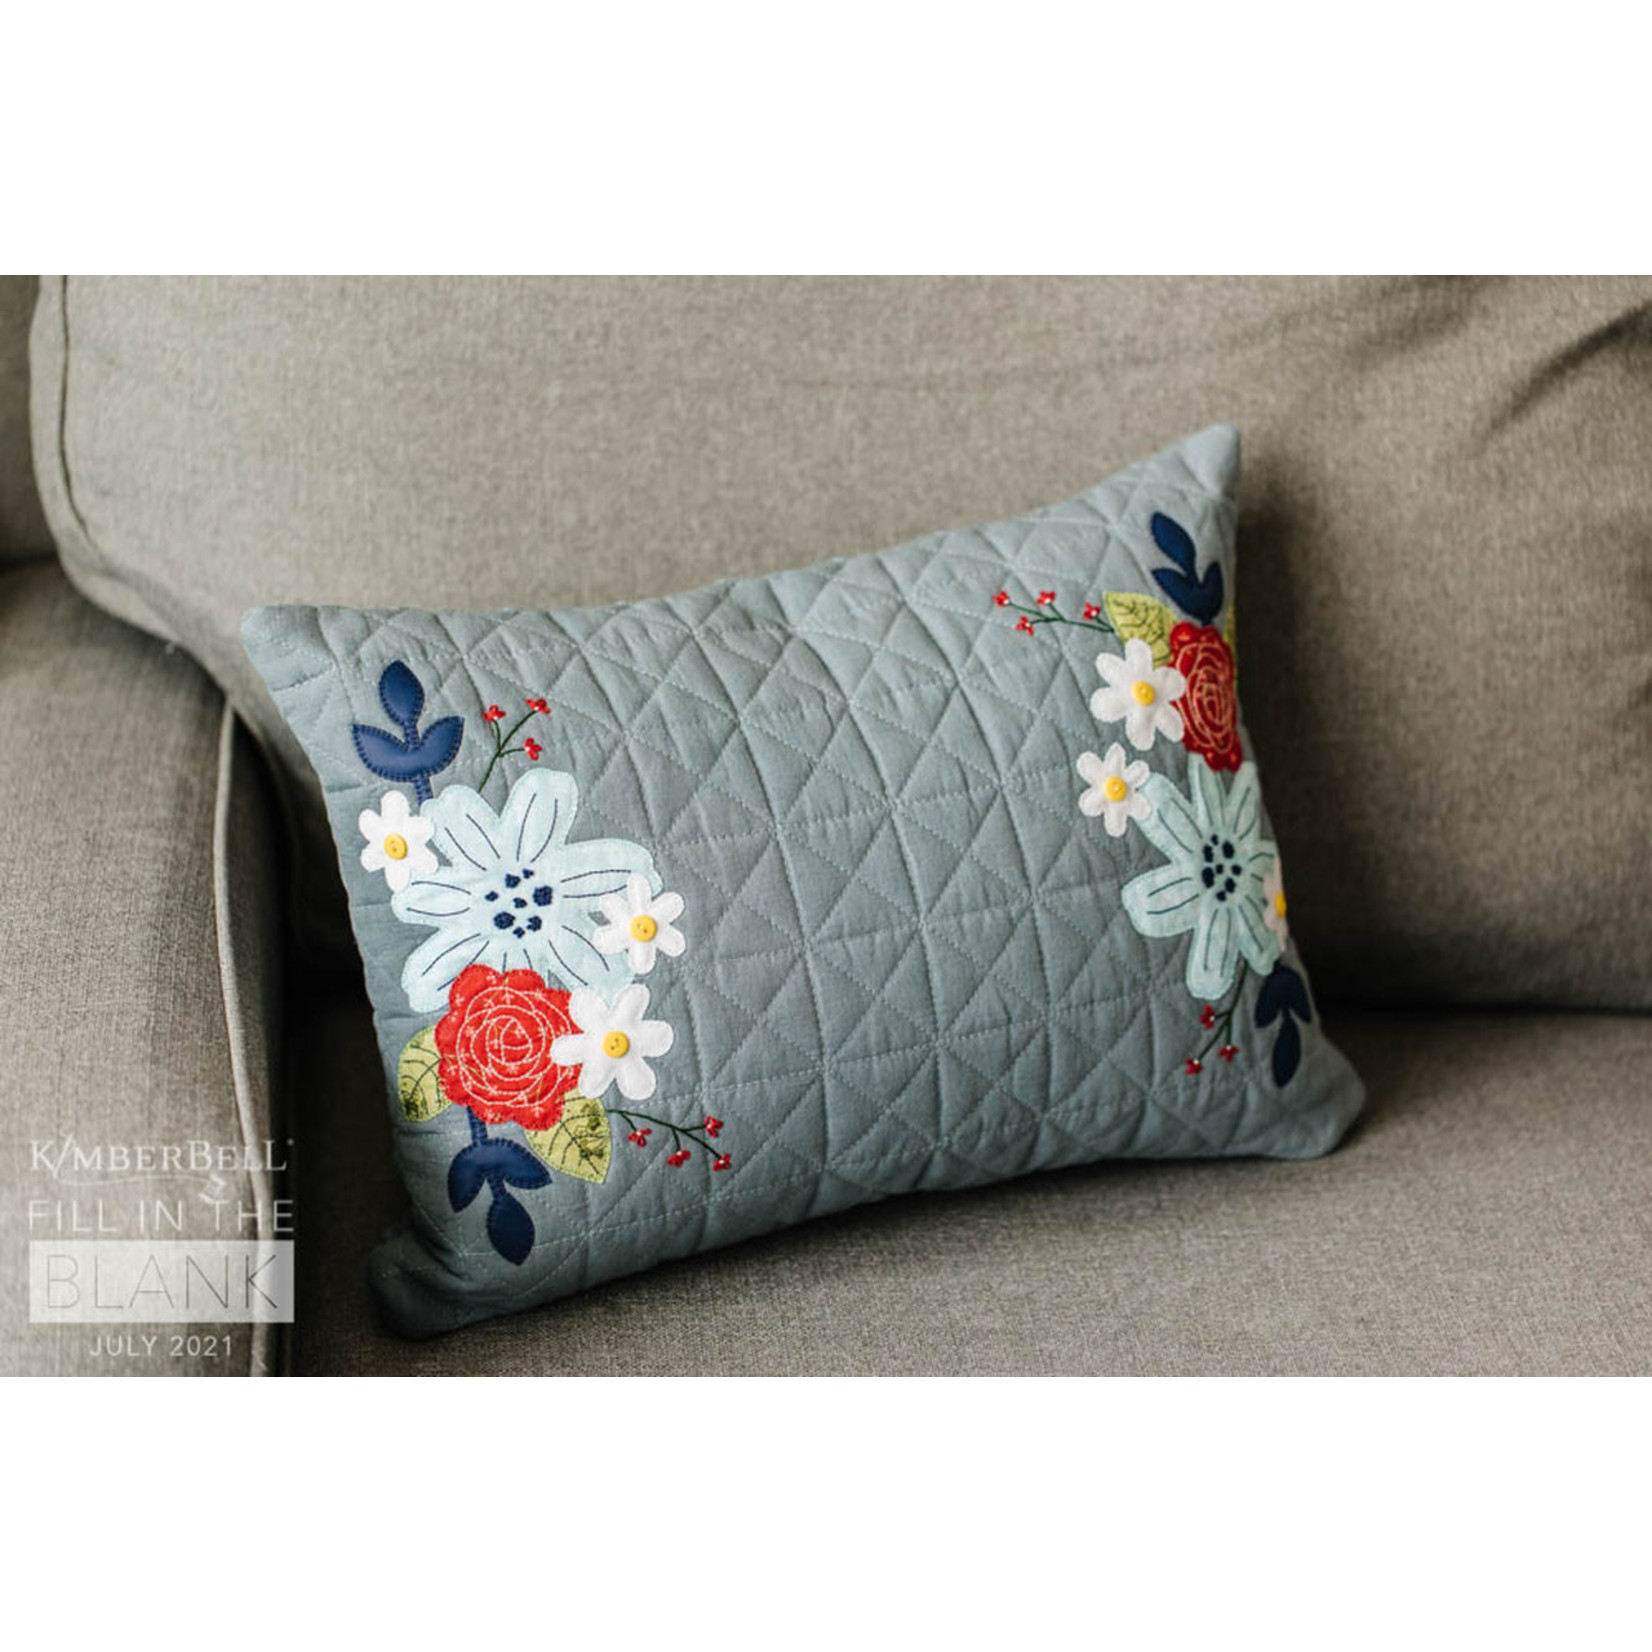 Kimberbell Designs Quilted Pillow Cover Blank, Lumbar, Patriot Blue